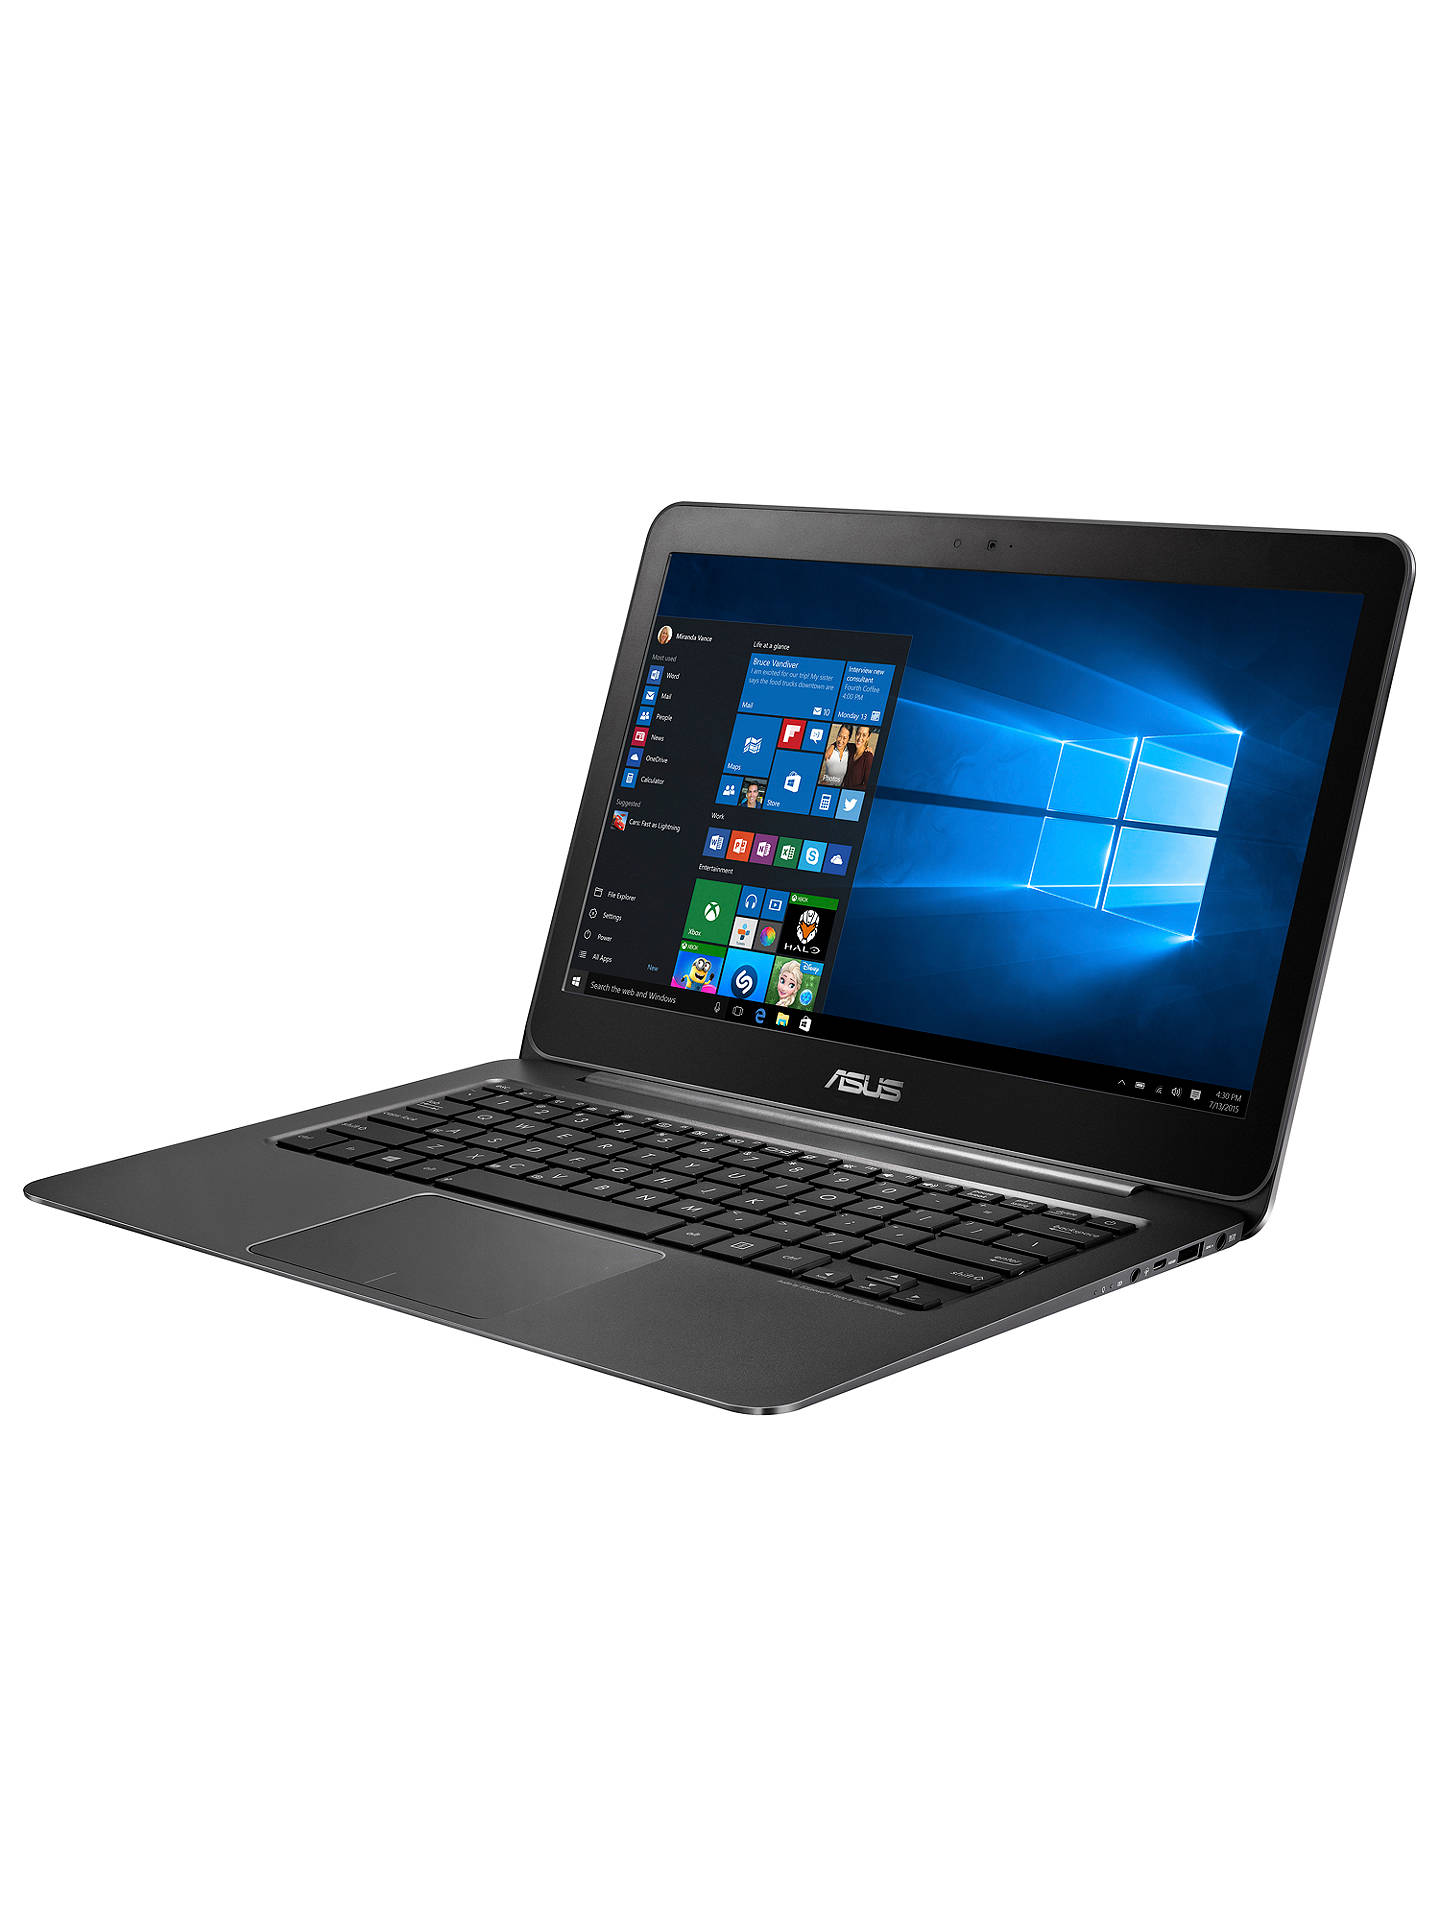 "Buy ASUS ZenBook UX305 Ultrabook, Intel Core M, 8GB RAM, 128GB SSD, 13.3"", Black Online at johnlewis.com"